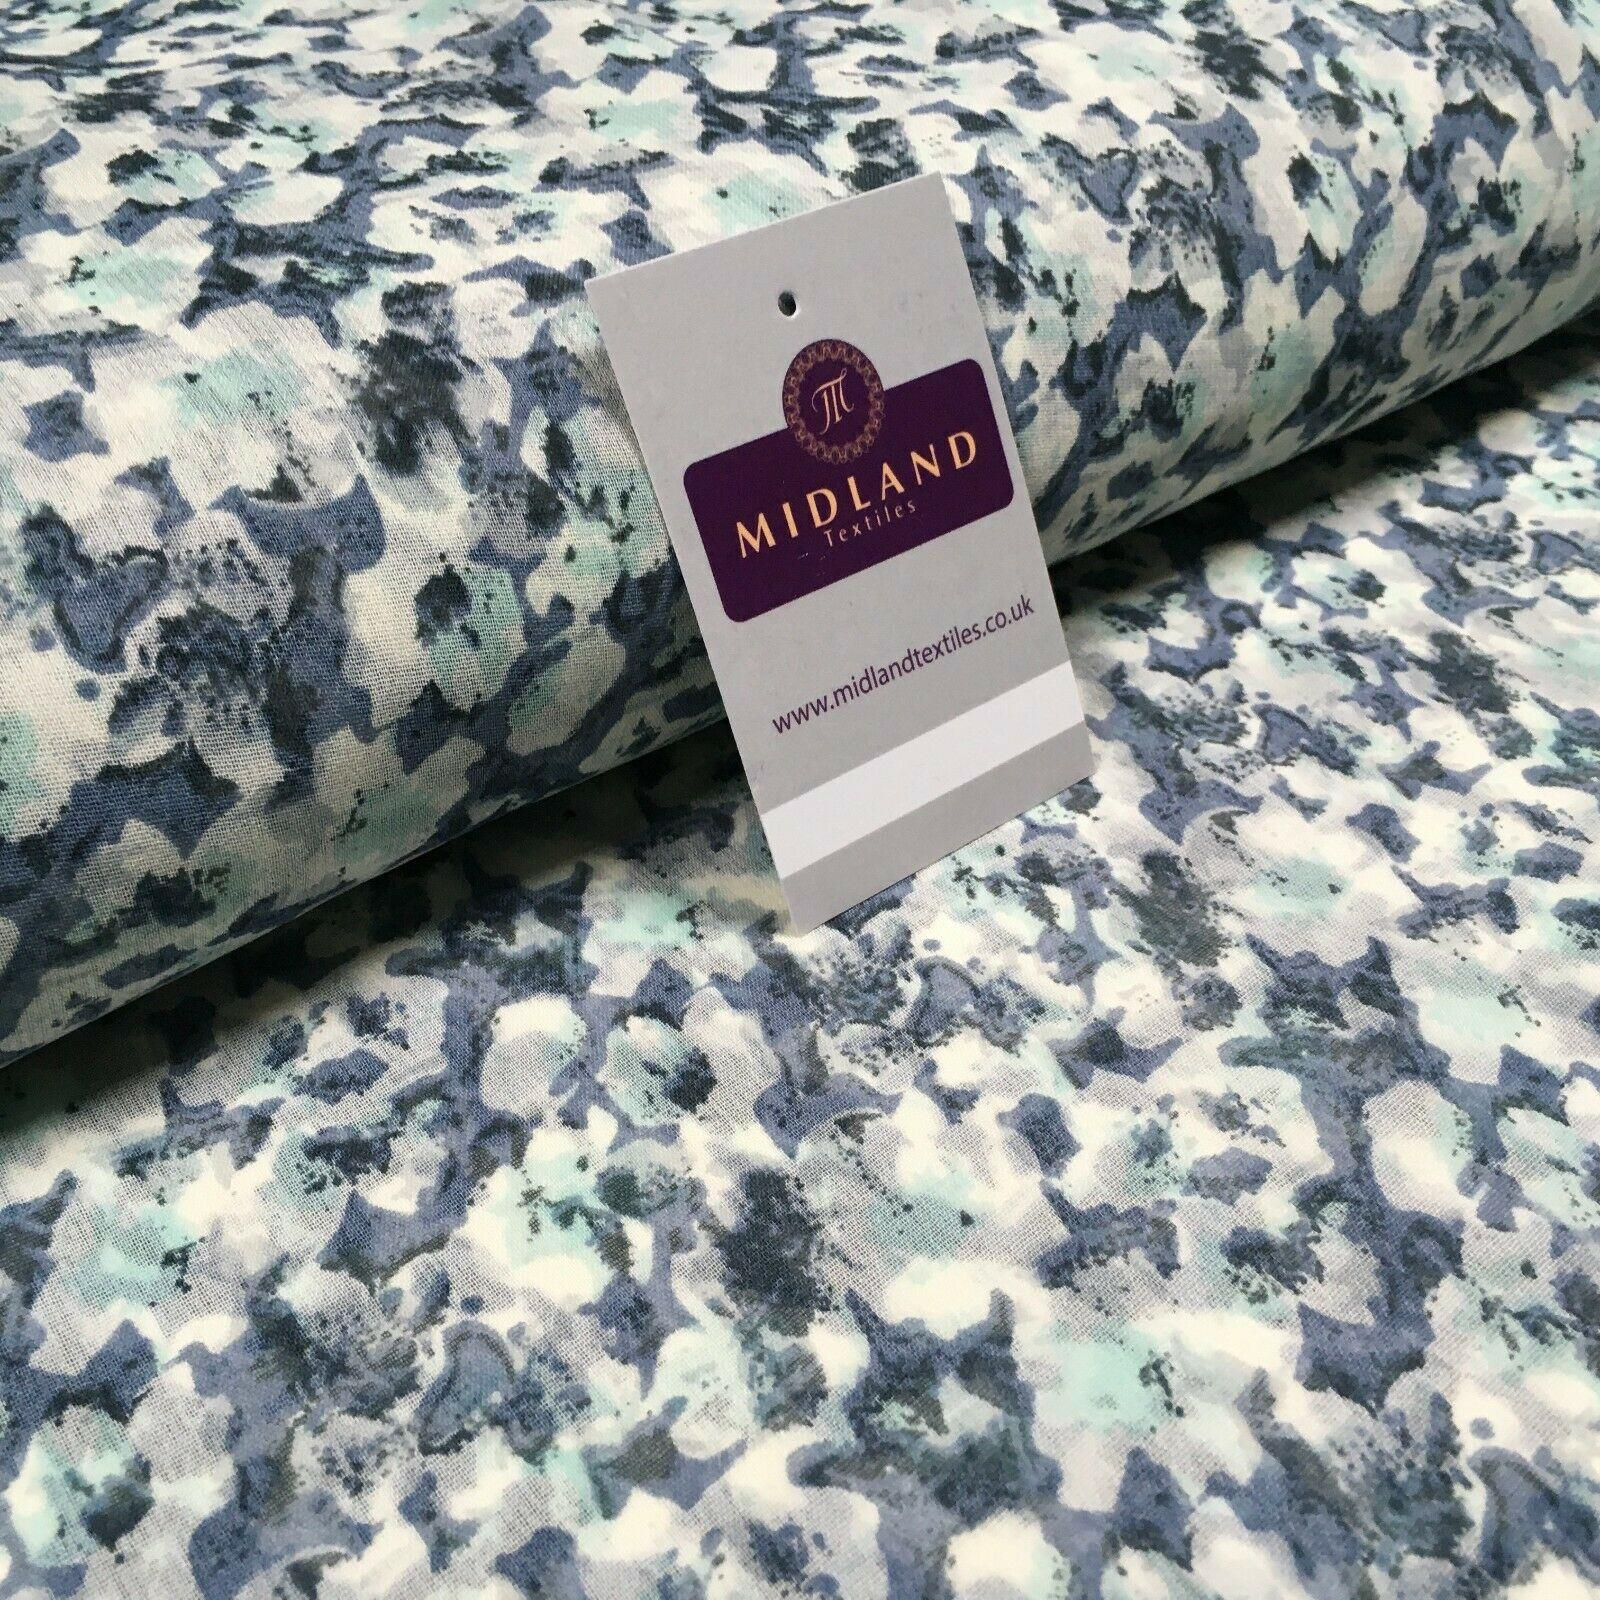 Mint Grey Floral Crepe Printed Chiffon Fabric 110 cm Wide M1358-2 Mtex